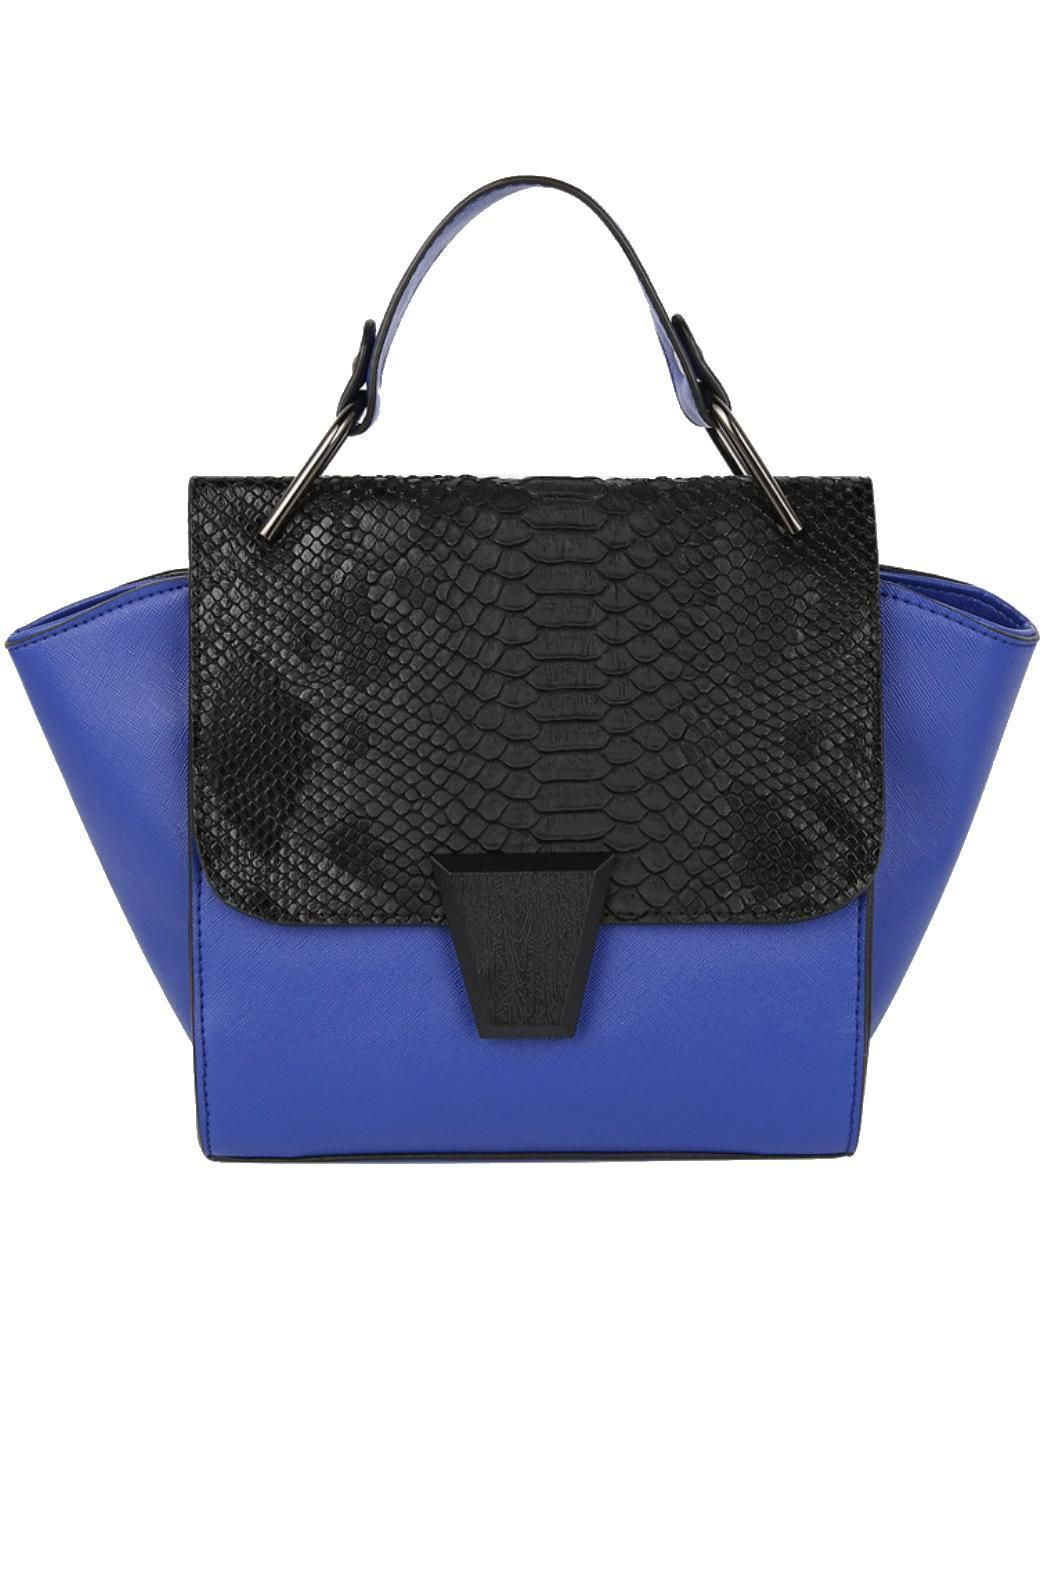 """Our Winged Top Handle is a true stand out piece. Featuring a front wood magnetic closure, stunning faux snake skin details, and gun metal hardware. The textures are perfectly layered to create a handbag with dimension and style. Additional shoulder strap included.    Handle Drop: 3.5"""";Dimensions: 11""""L x 4""""W x 8""""H   Winged Top Handle Bag Bags - Shoulder & Hobo Arizona"""